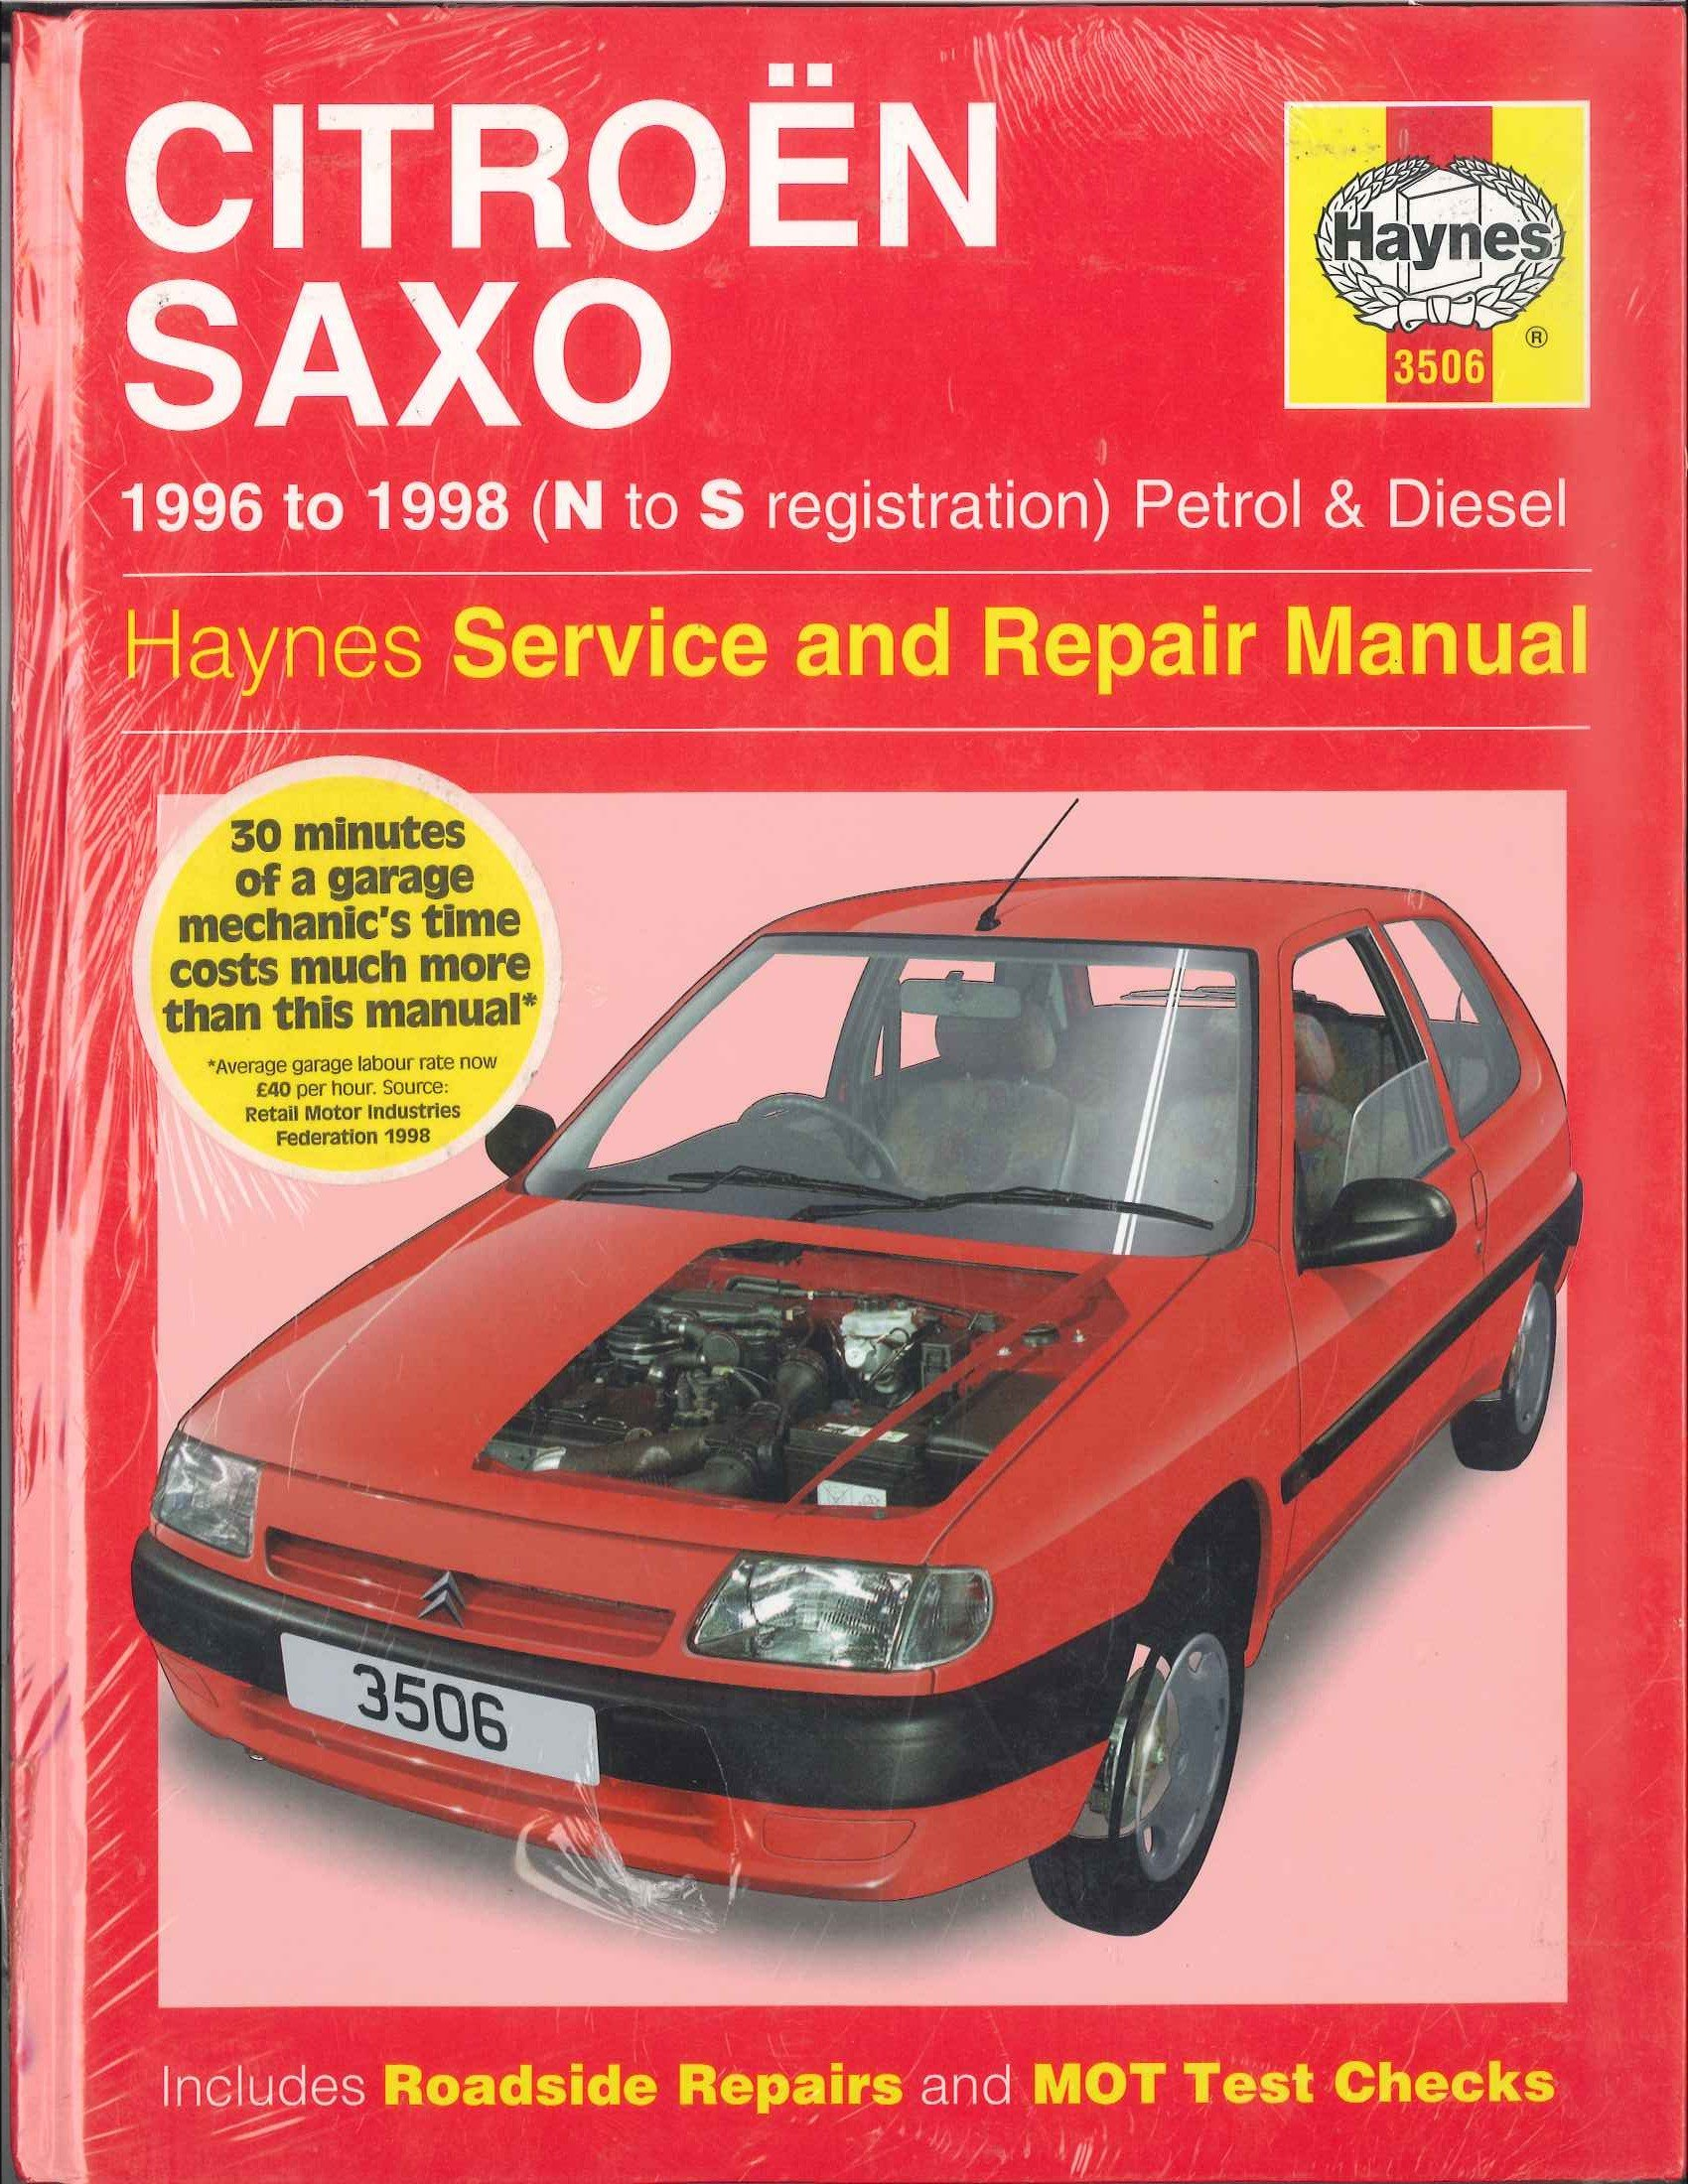 Citroen Saxo (1996 to 1998, N to S reg) Service and Repair Manual:  Amazon.co.uk: Spencer Drayton, R. M. Jex: 9781859605066: Books